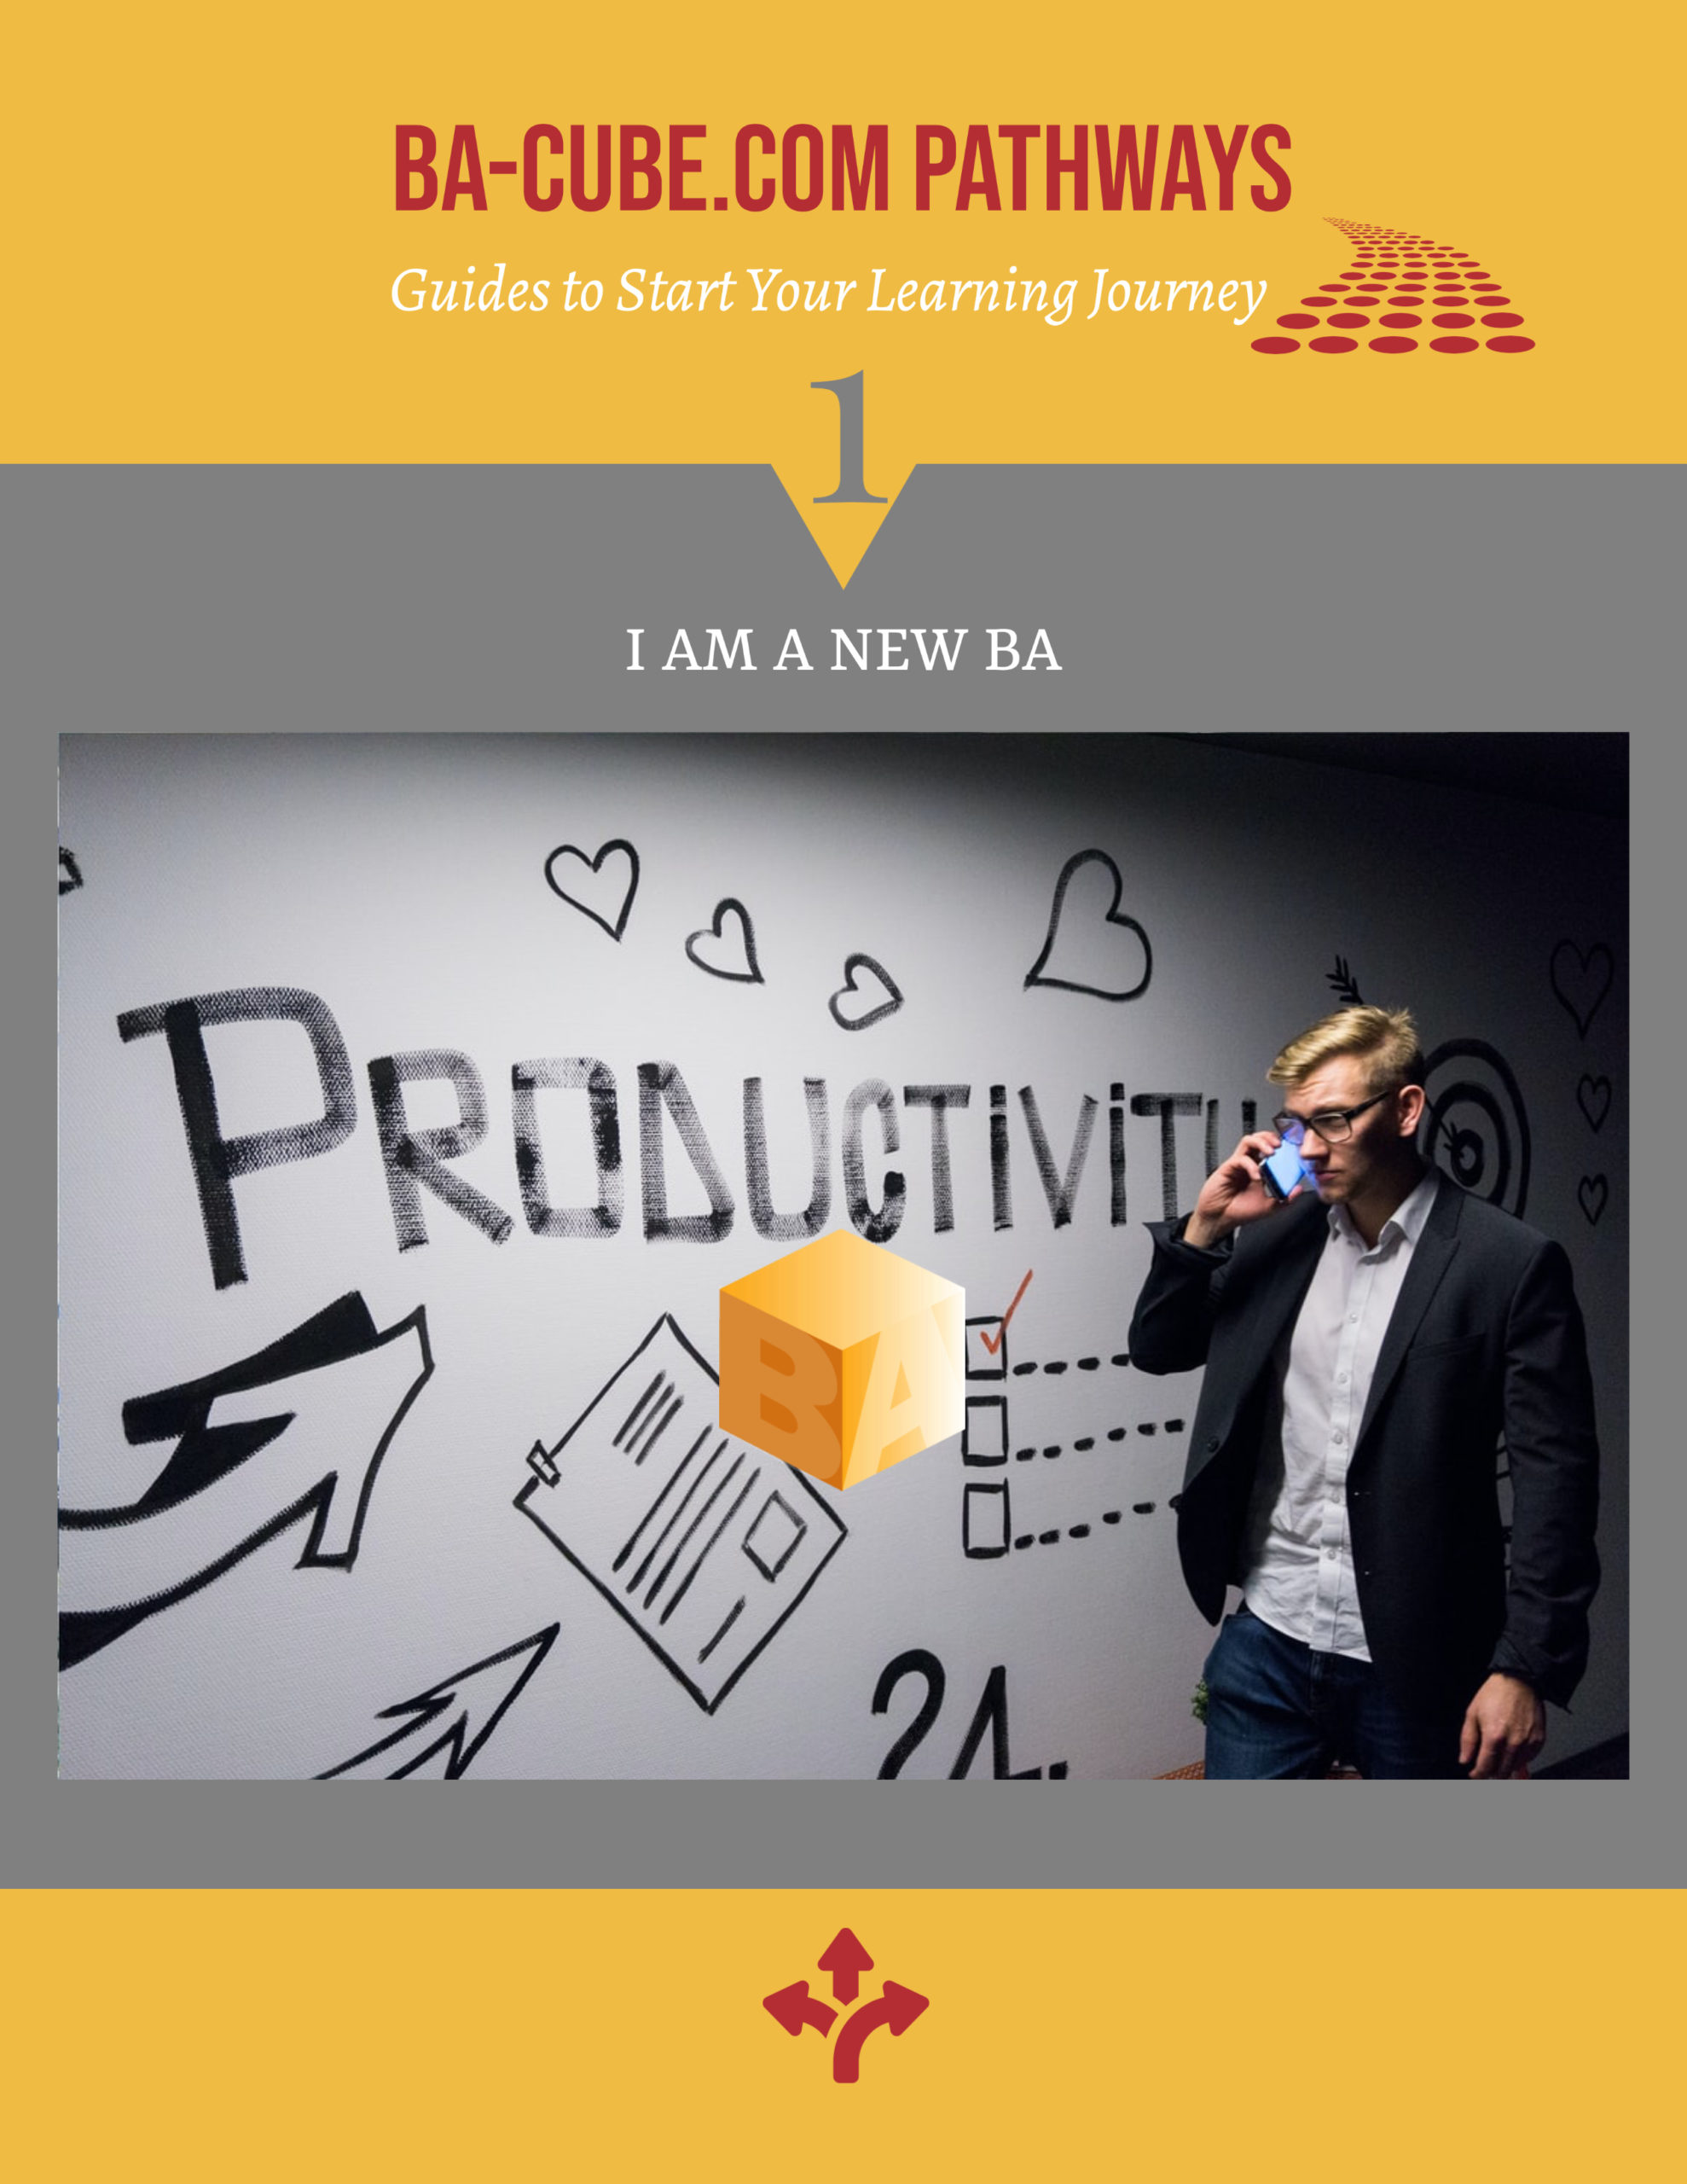 Pathway 1: I am new to being a BA!